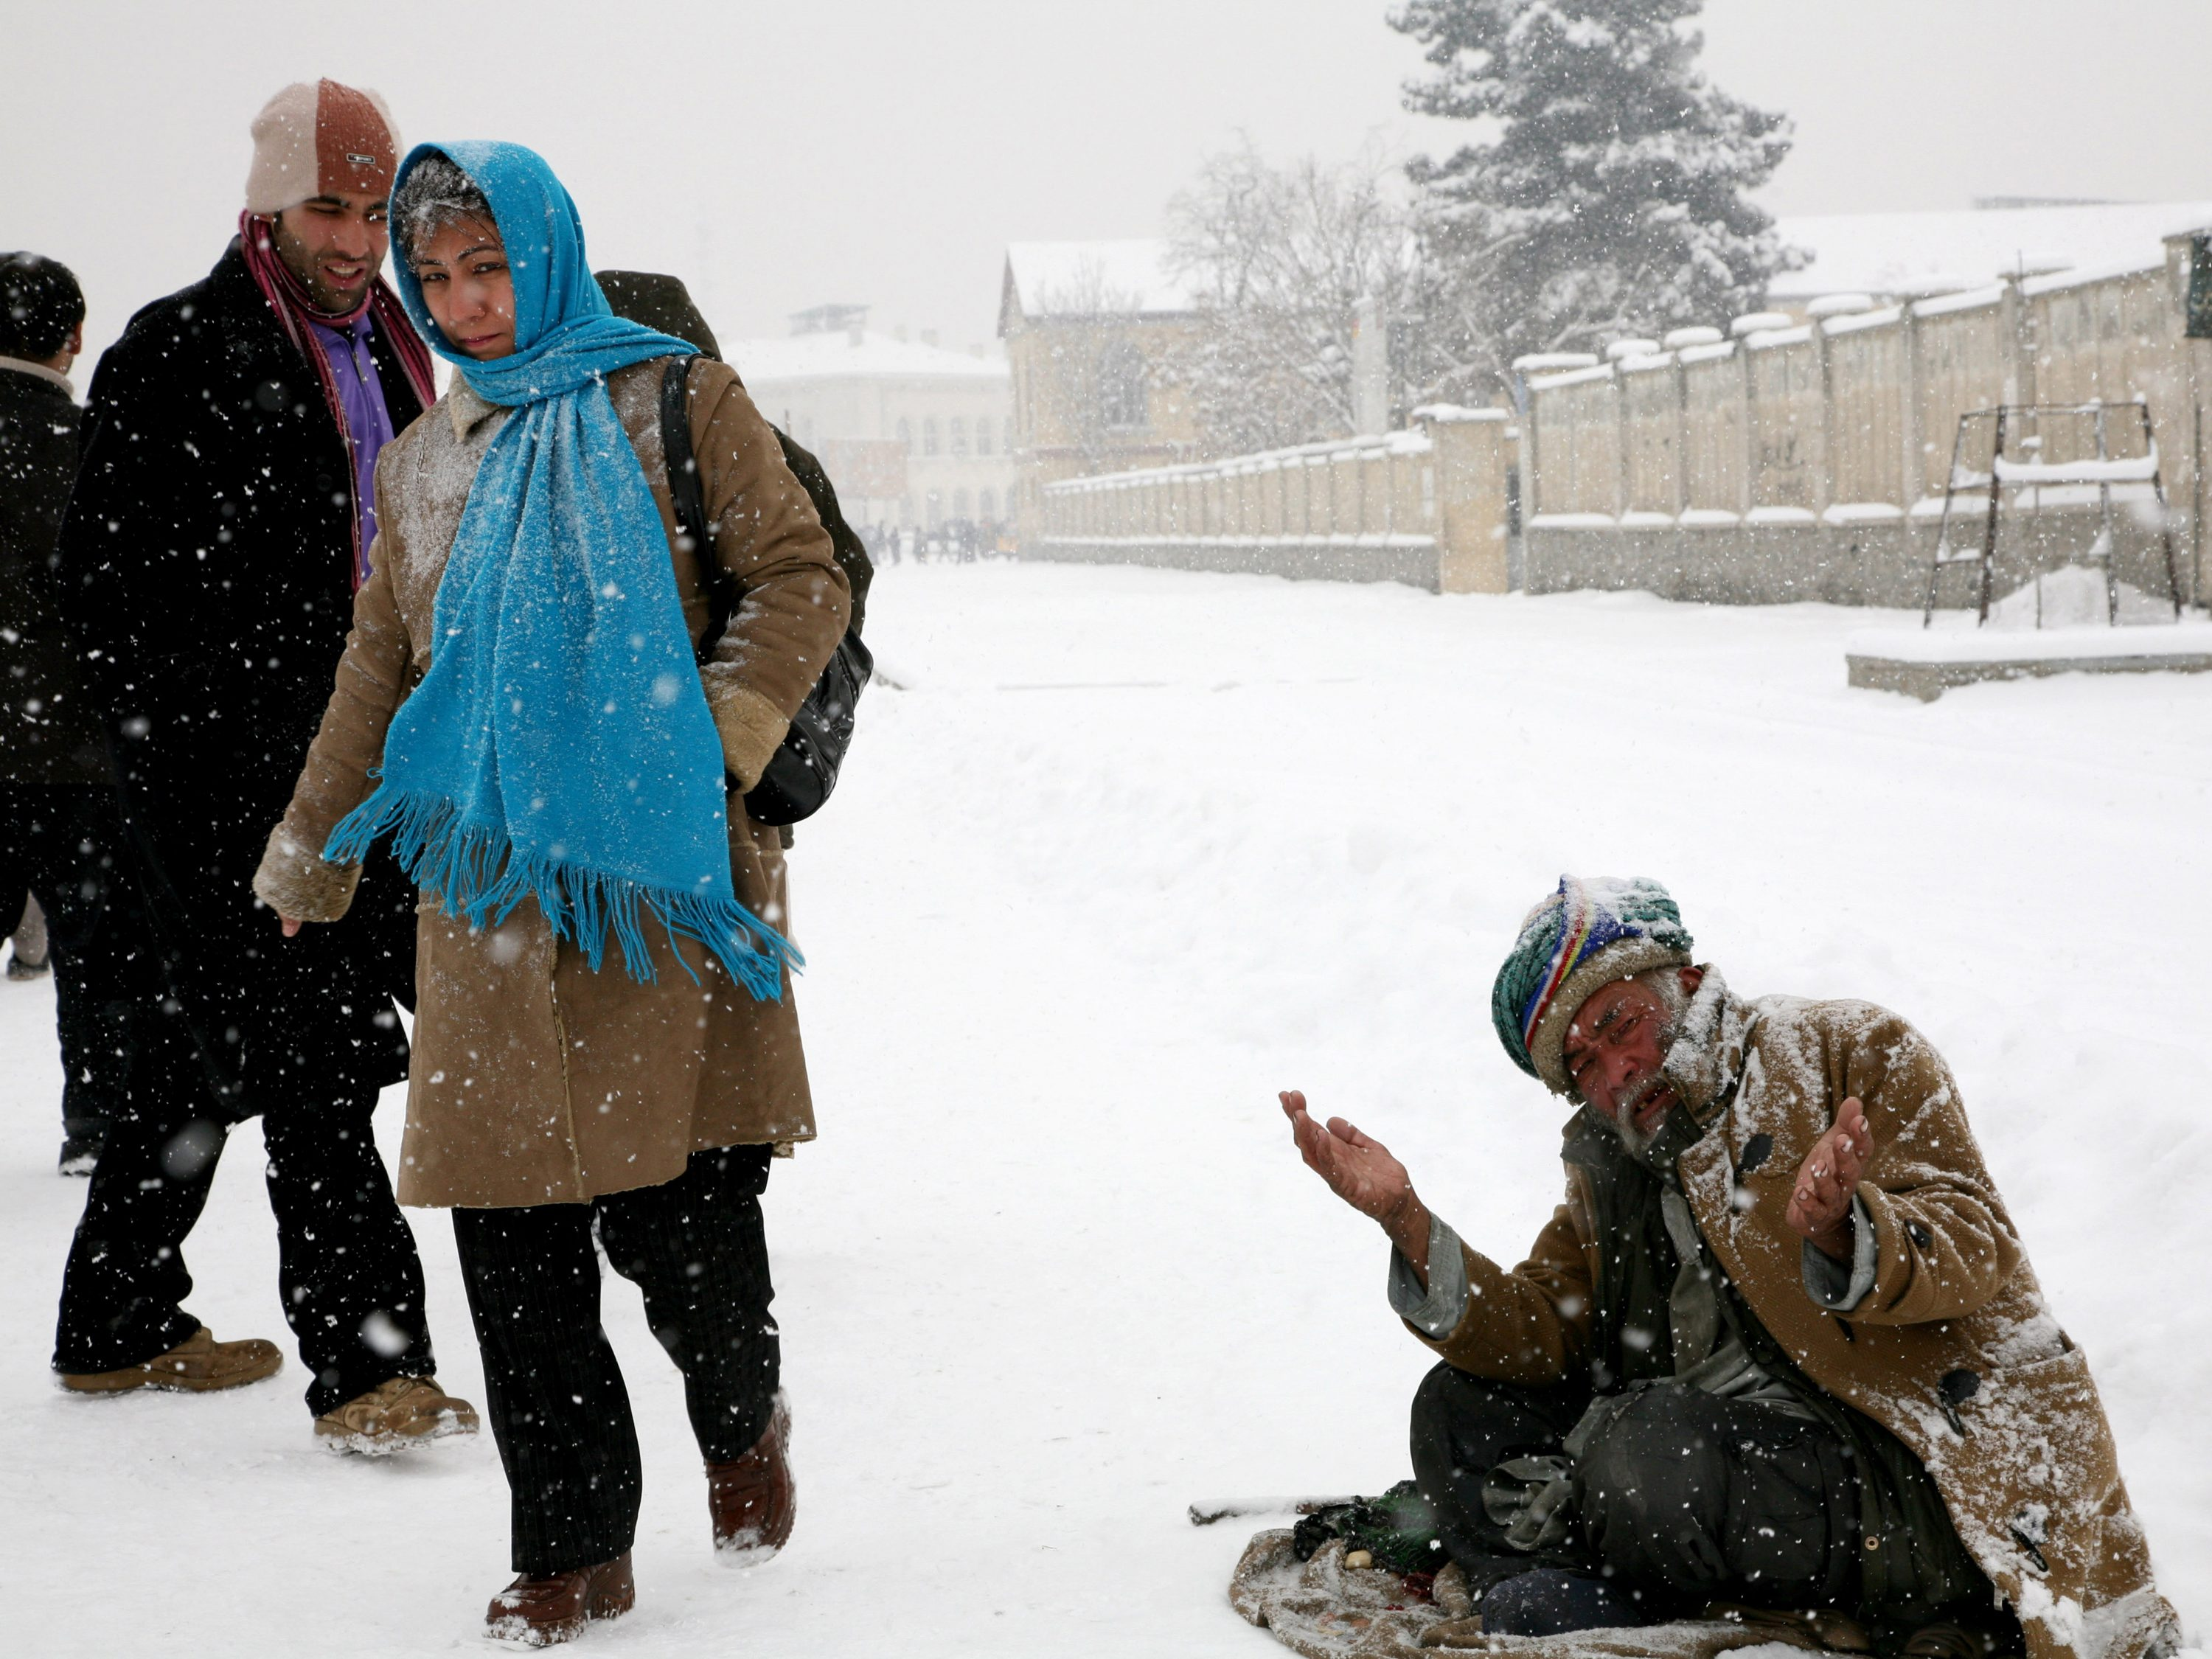 Poverty still drives people out of their homes, even on a snowy day, to earn a living.